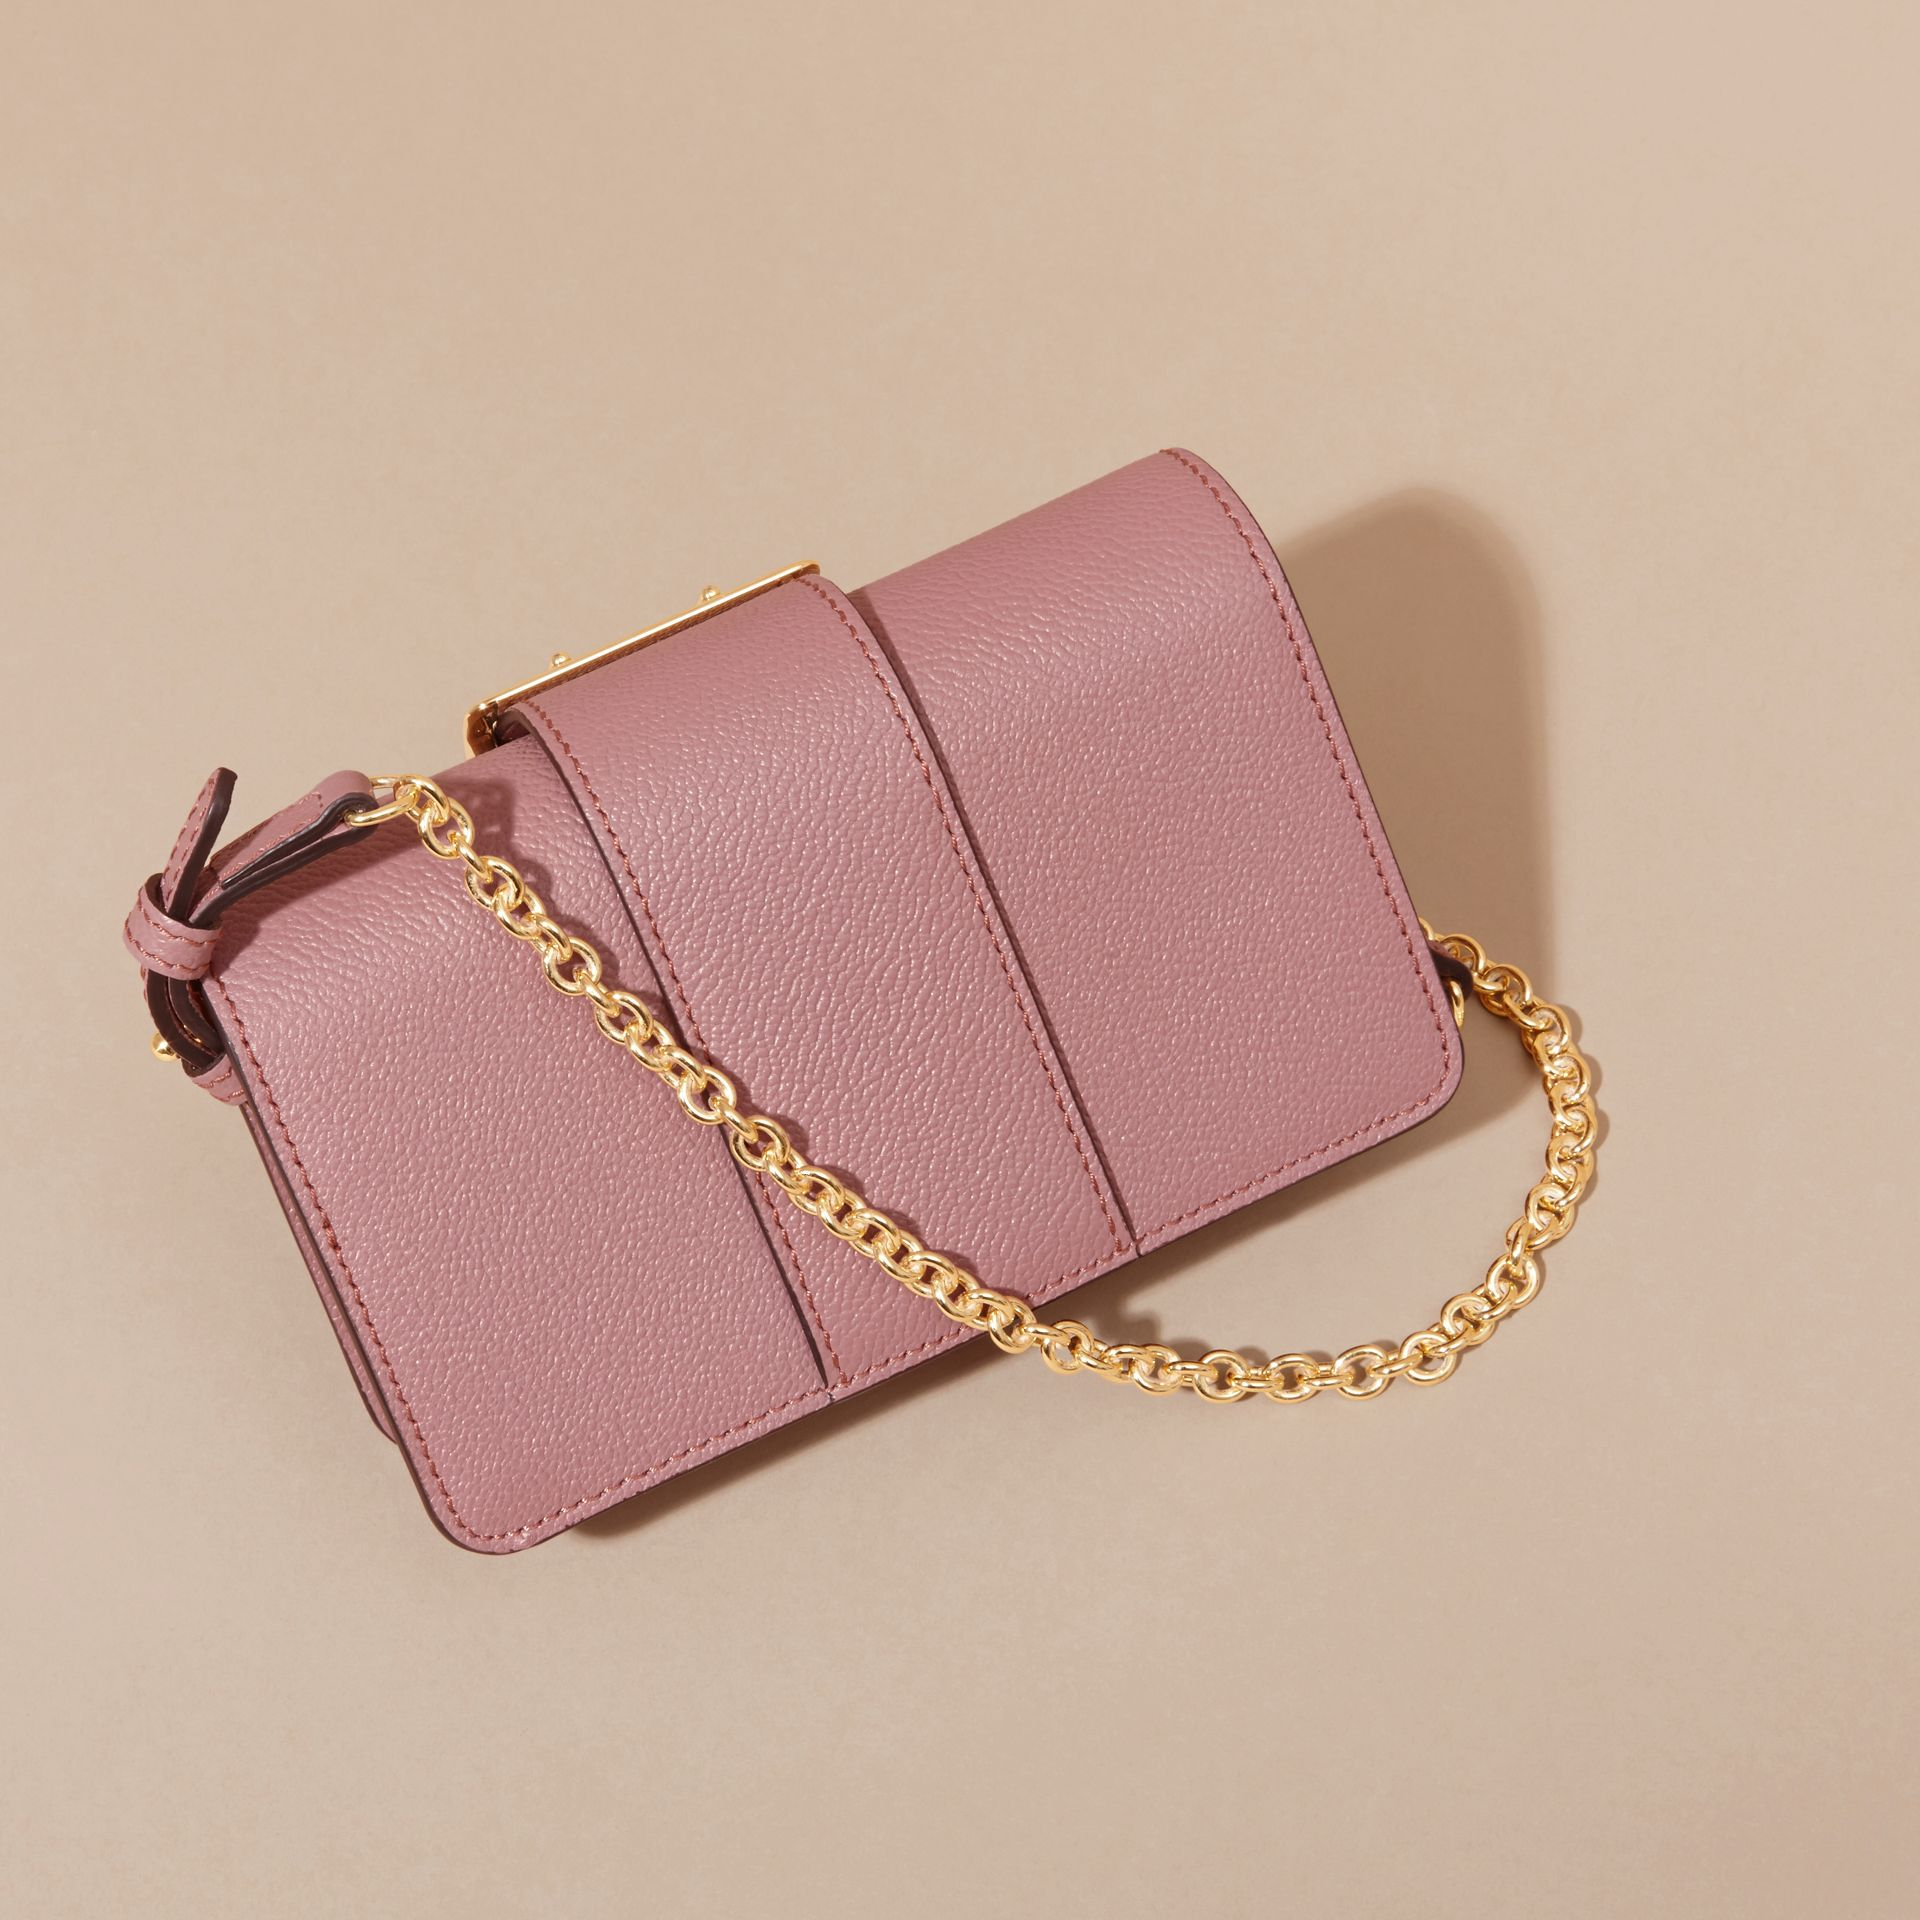 The Mini Buckle Bag in Grainy Leather in Dusty Pink - Women | Burberry - gallery image 4